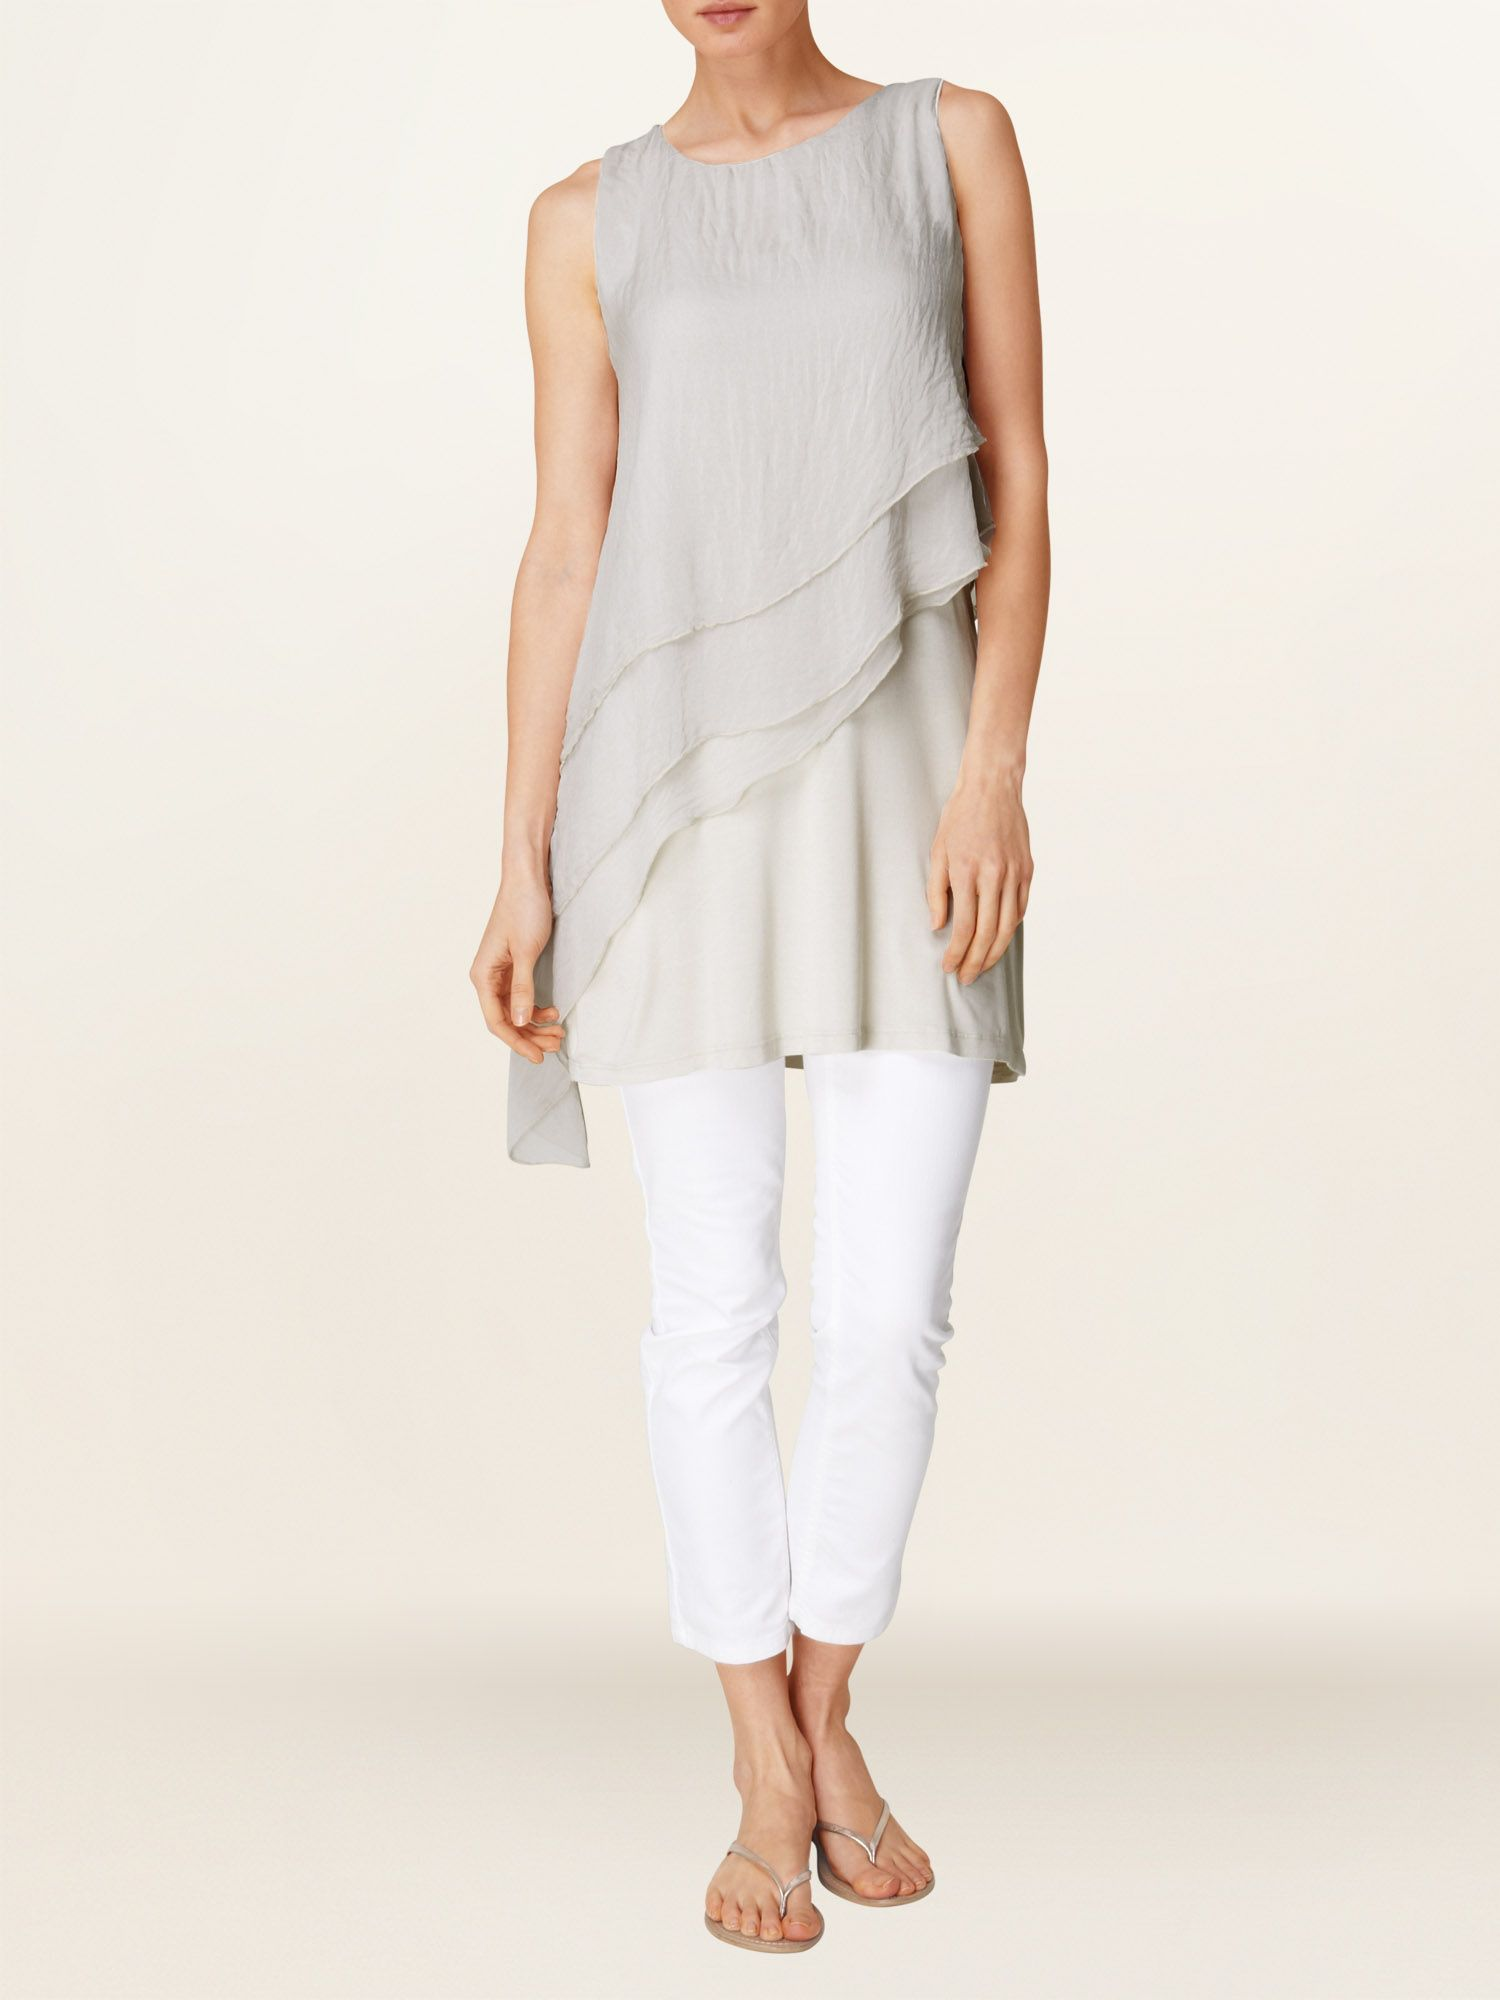 Alessandra chiffon and jersey tunic